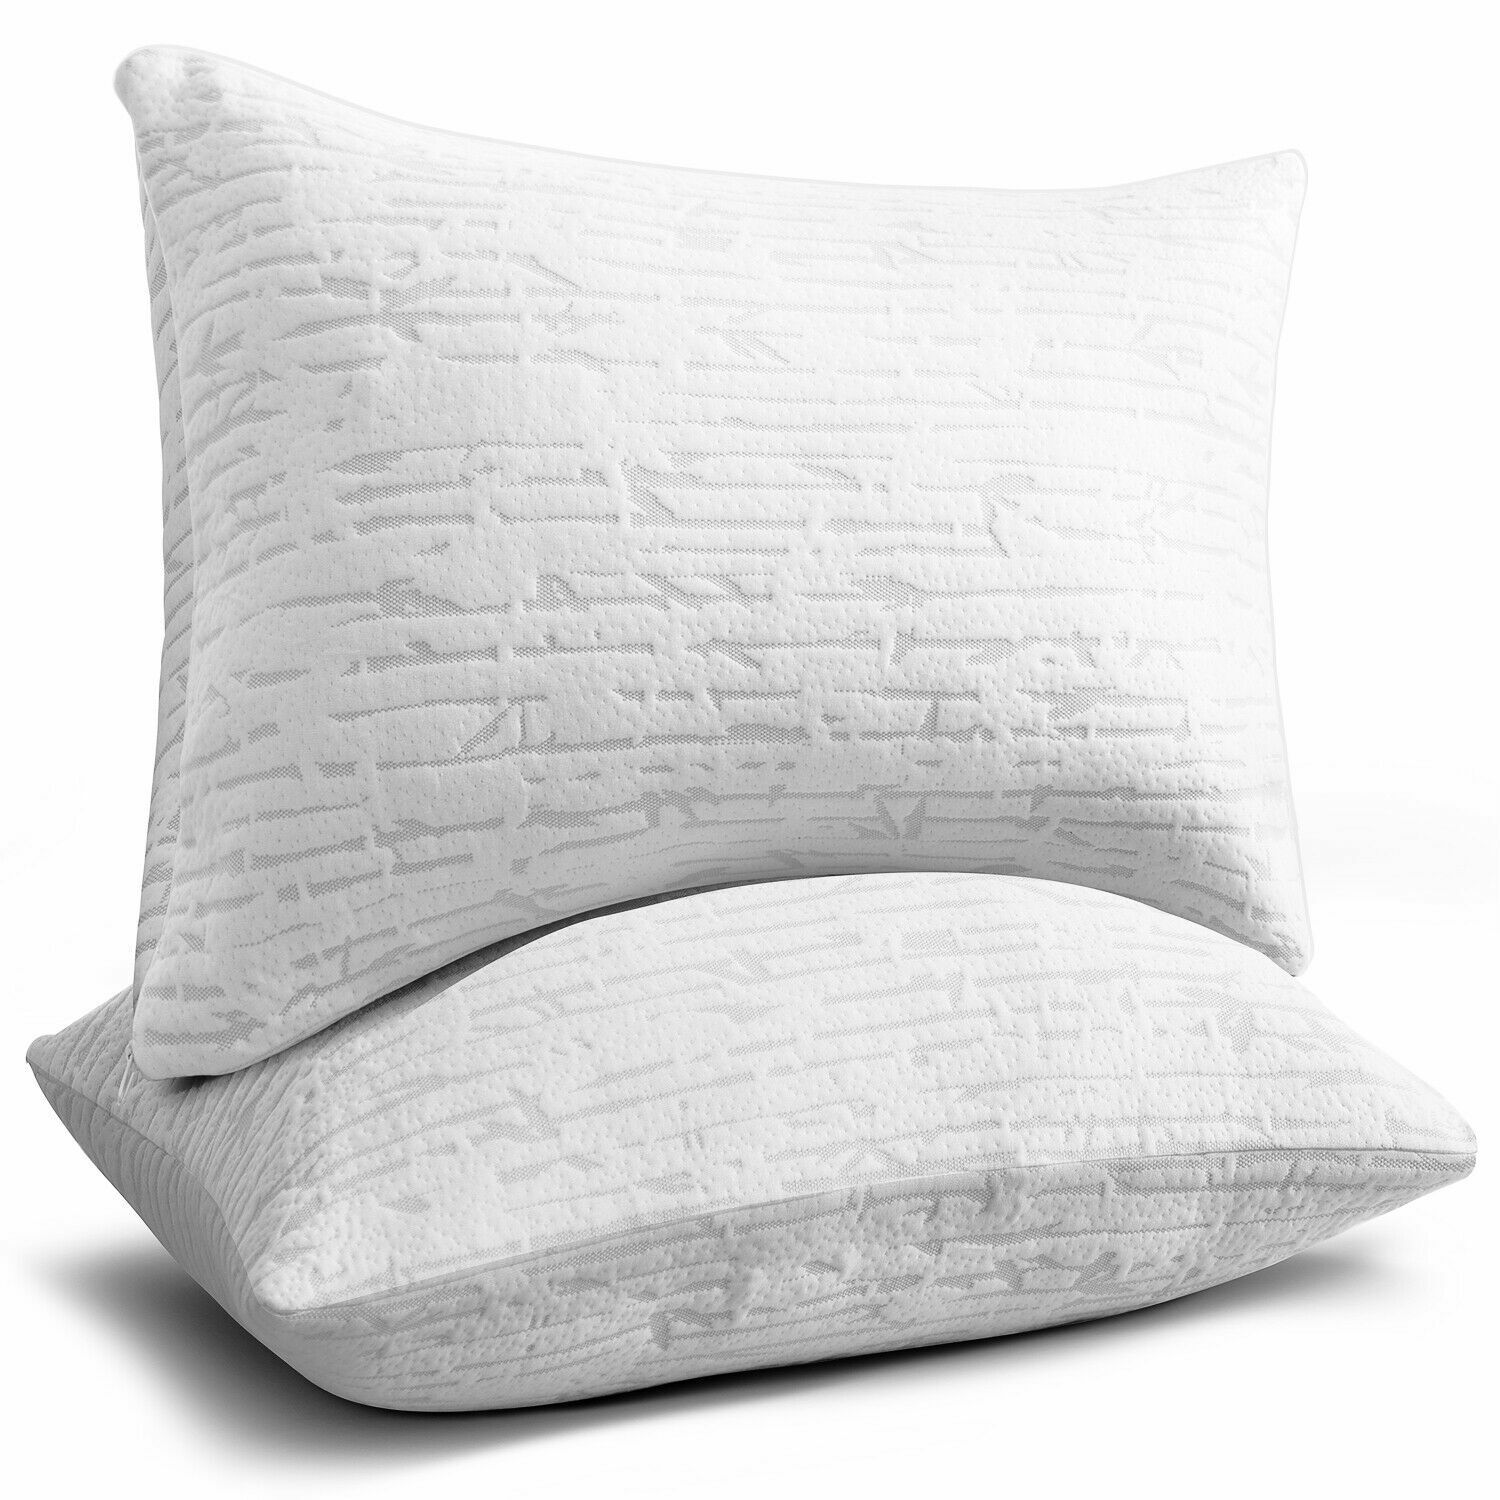 Memory Foam Luxurious Bamboo Pillow by Clara Clark King Queen Available